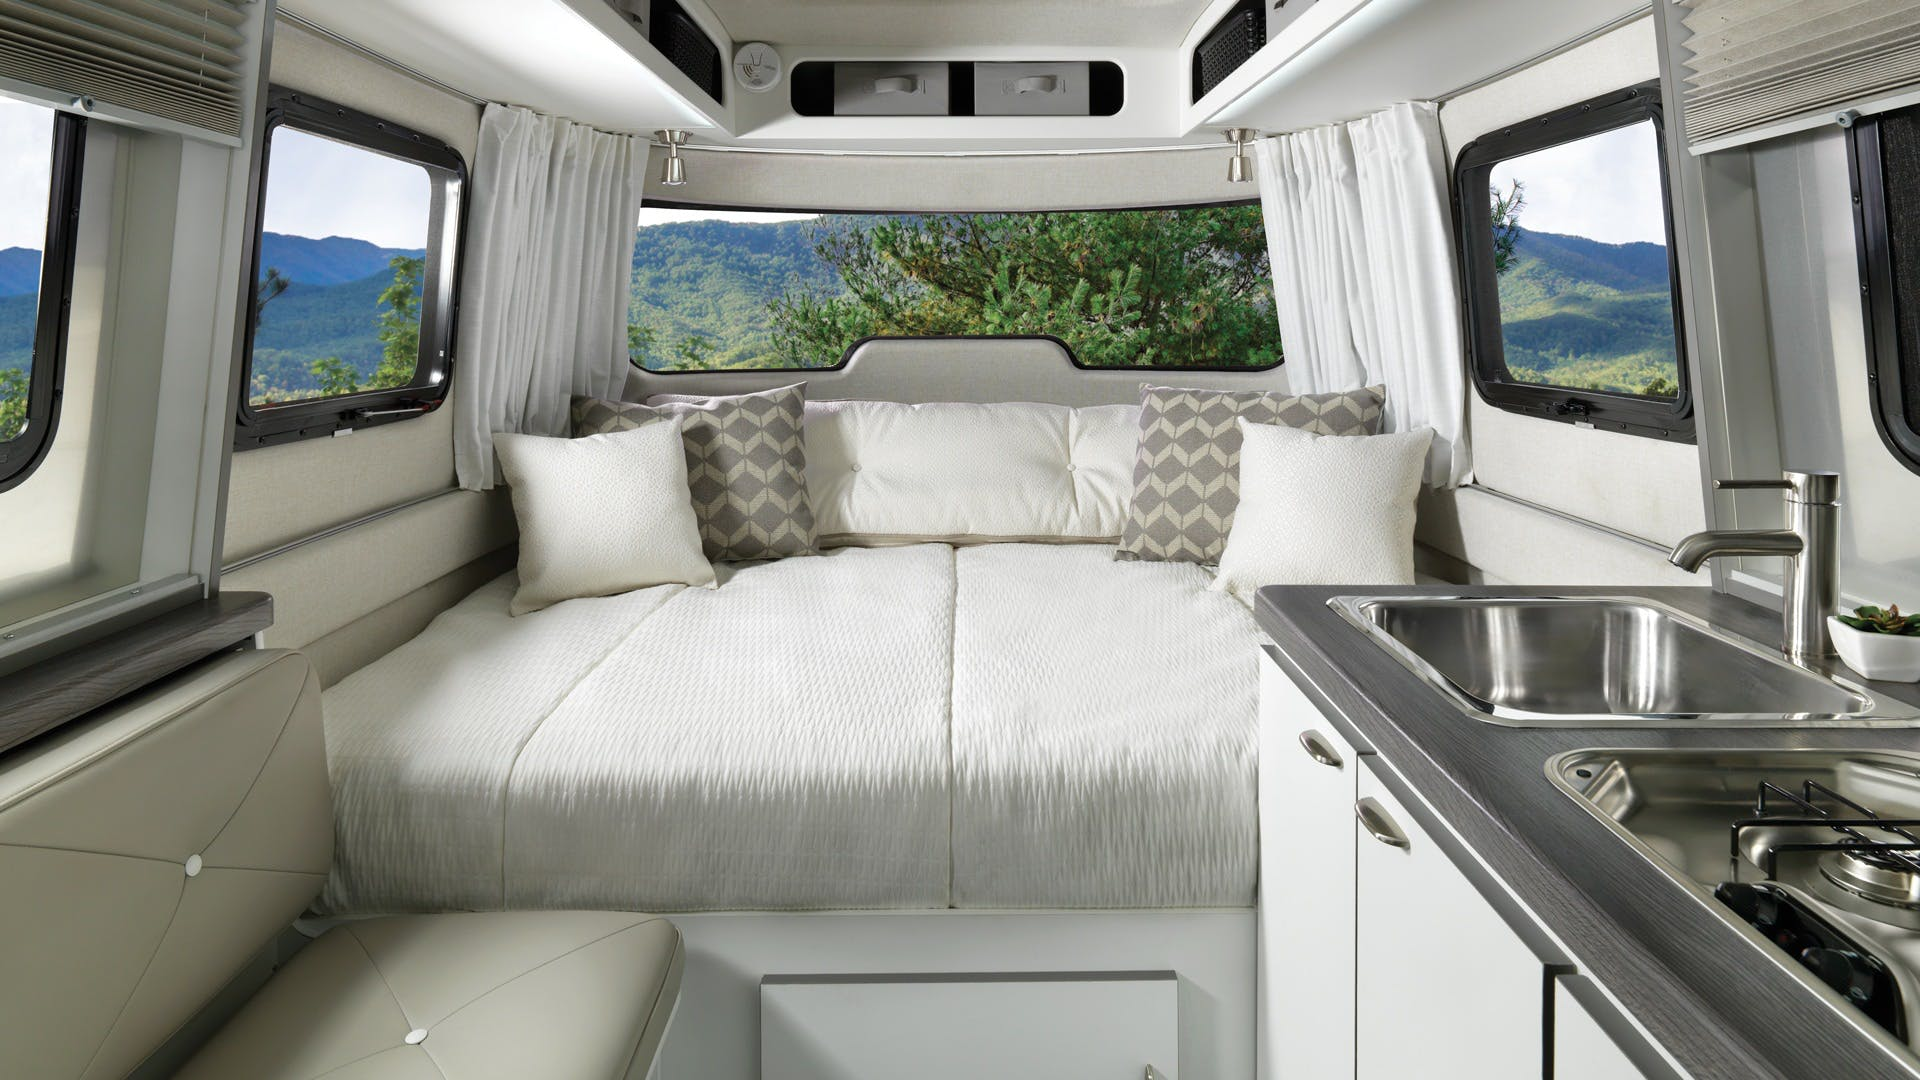 Nest by Airstream wingspan white front bed fixed white covers bed big kitchen sink sofa